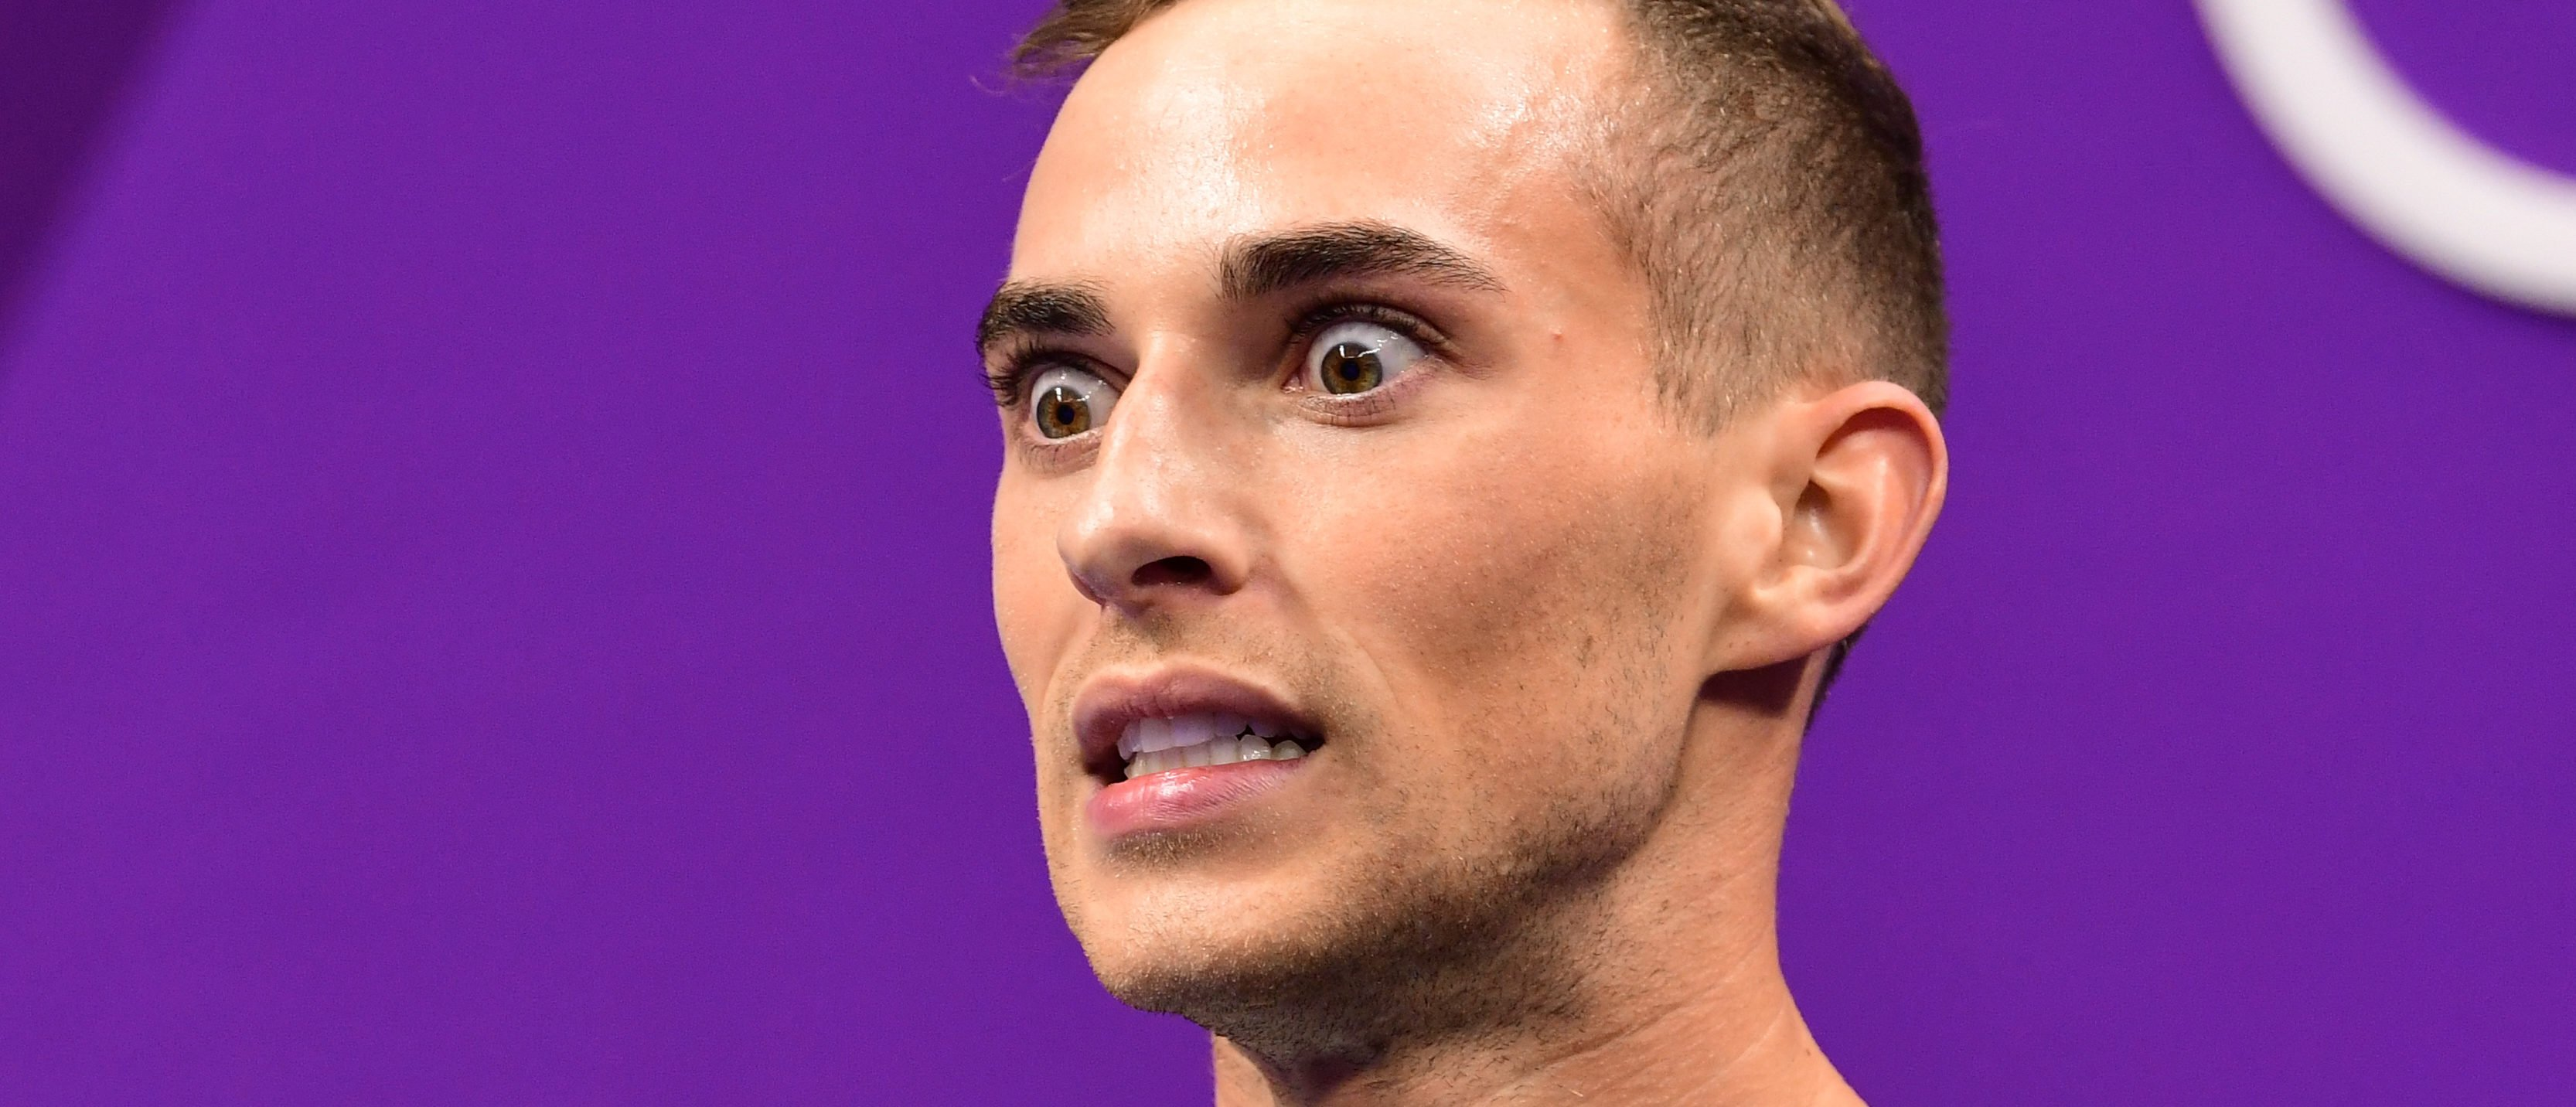 USA's Adam Rippon reacts after competing in the men's single skating free skating of the figure skating event during the Pyeongchang 2018 Winter Olympic Games at the Gangneung Ice Arena in Gangneung on February 17, 2018. / AFP PHOTO / Roberto SCHMIDT (Photo credit should read ROBERTO SCHMIDT/AFP/Getty Images)